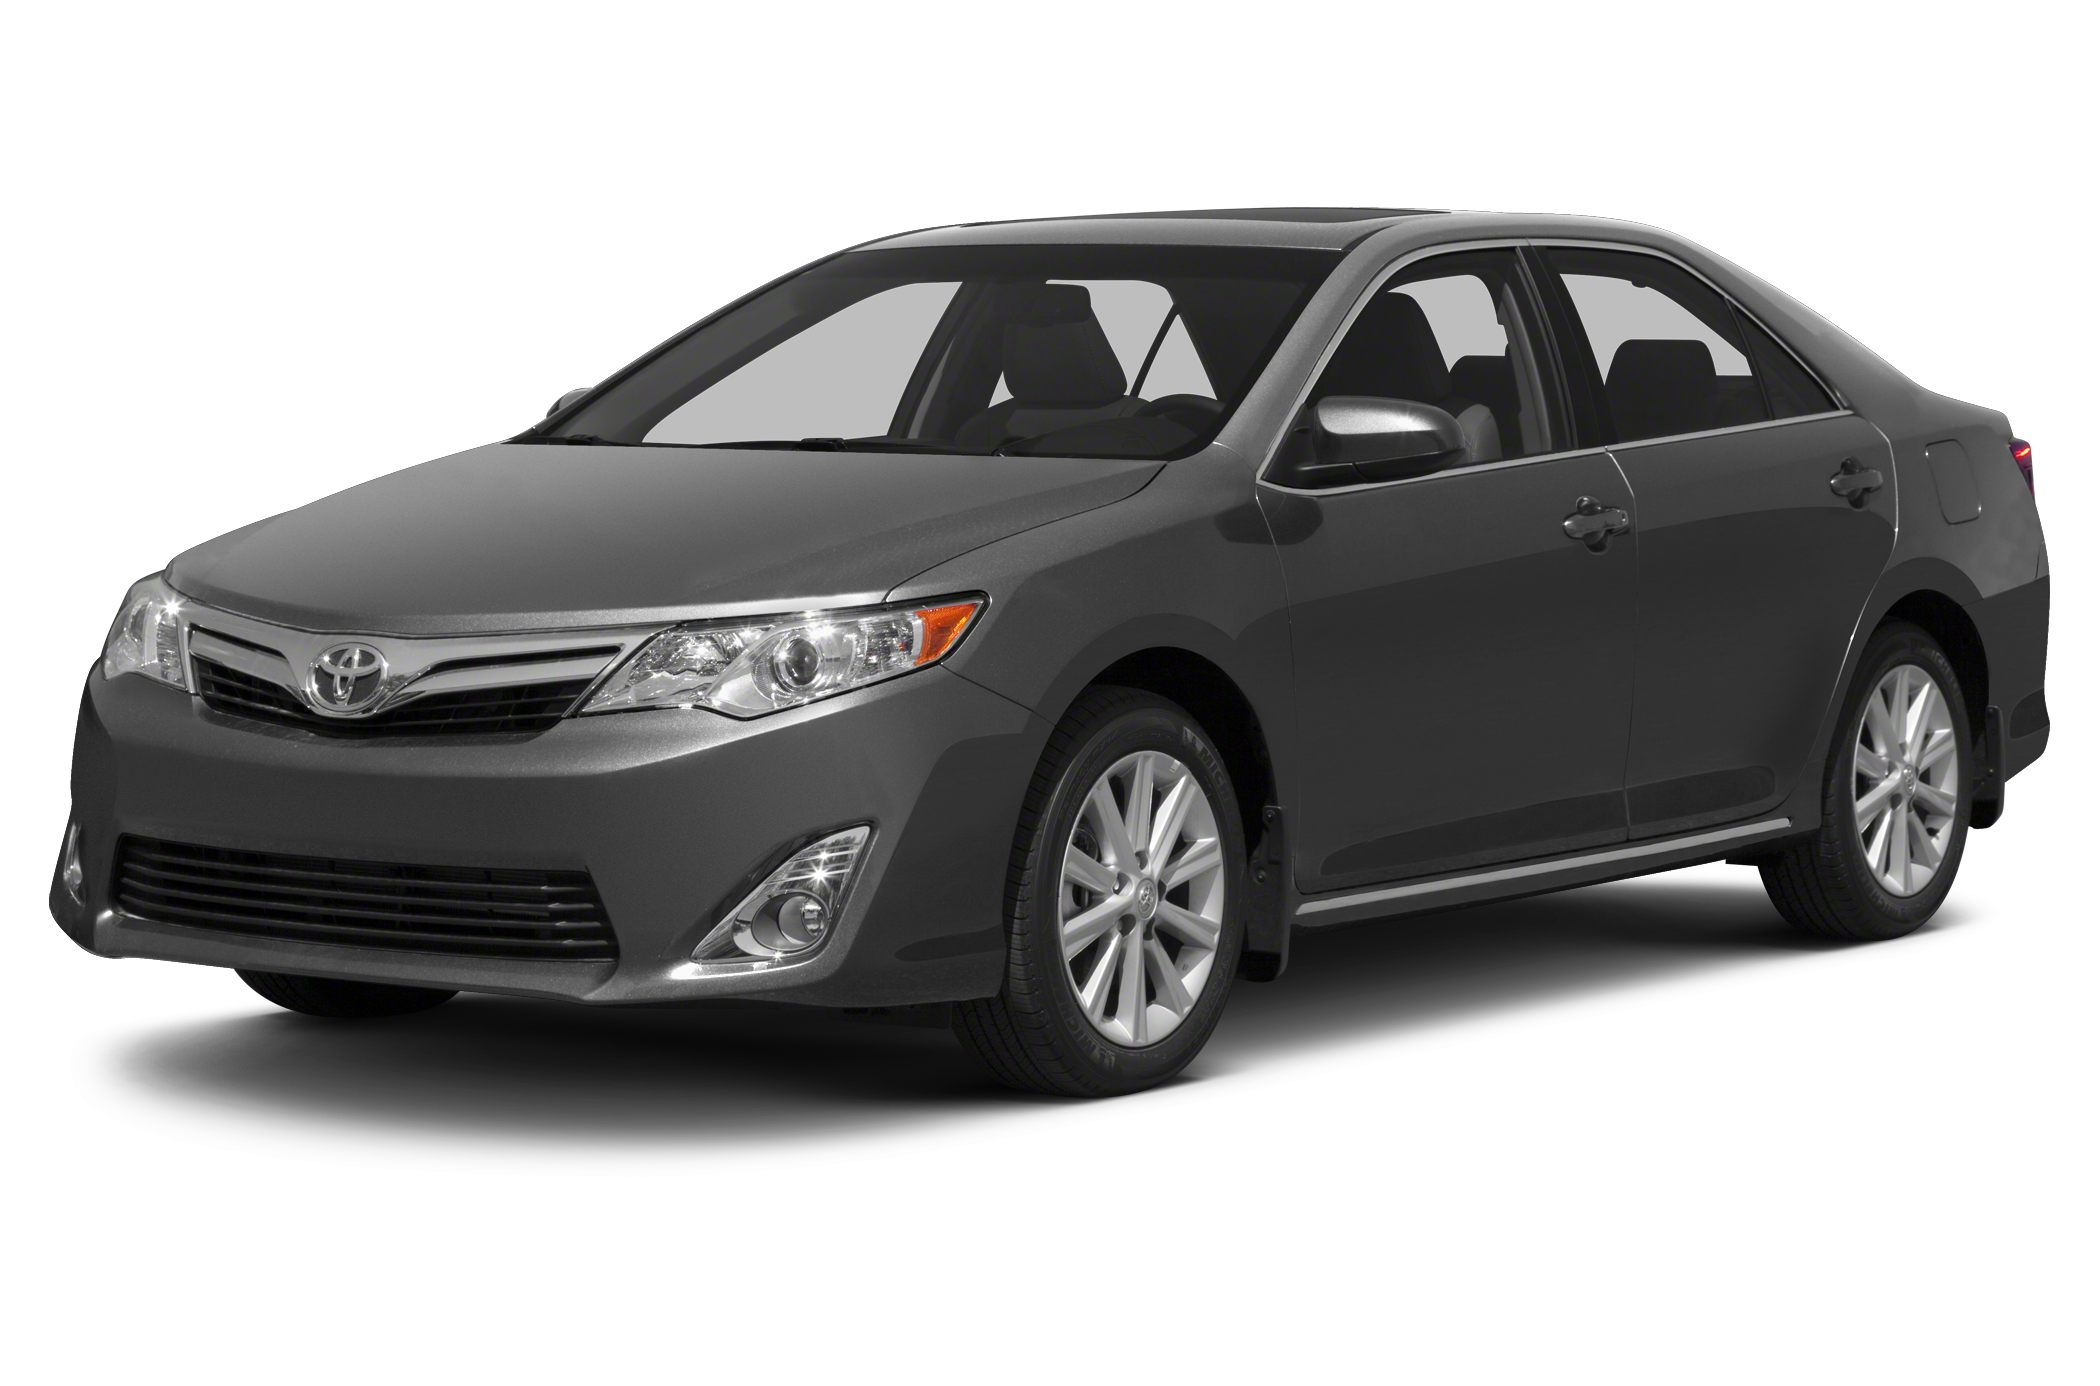 2012 Toyota Camry LE Sedan for sale in Chantilly for $15,987 with 47,093 miles